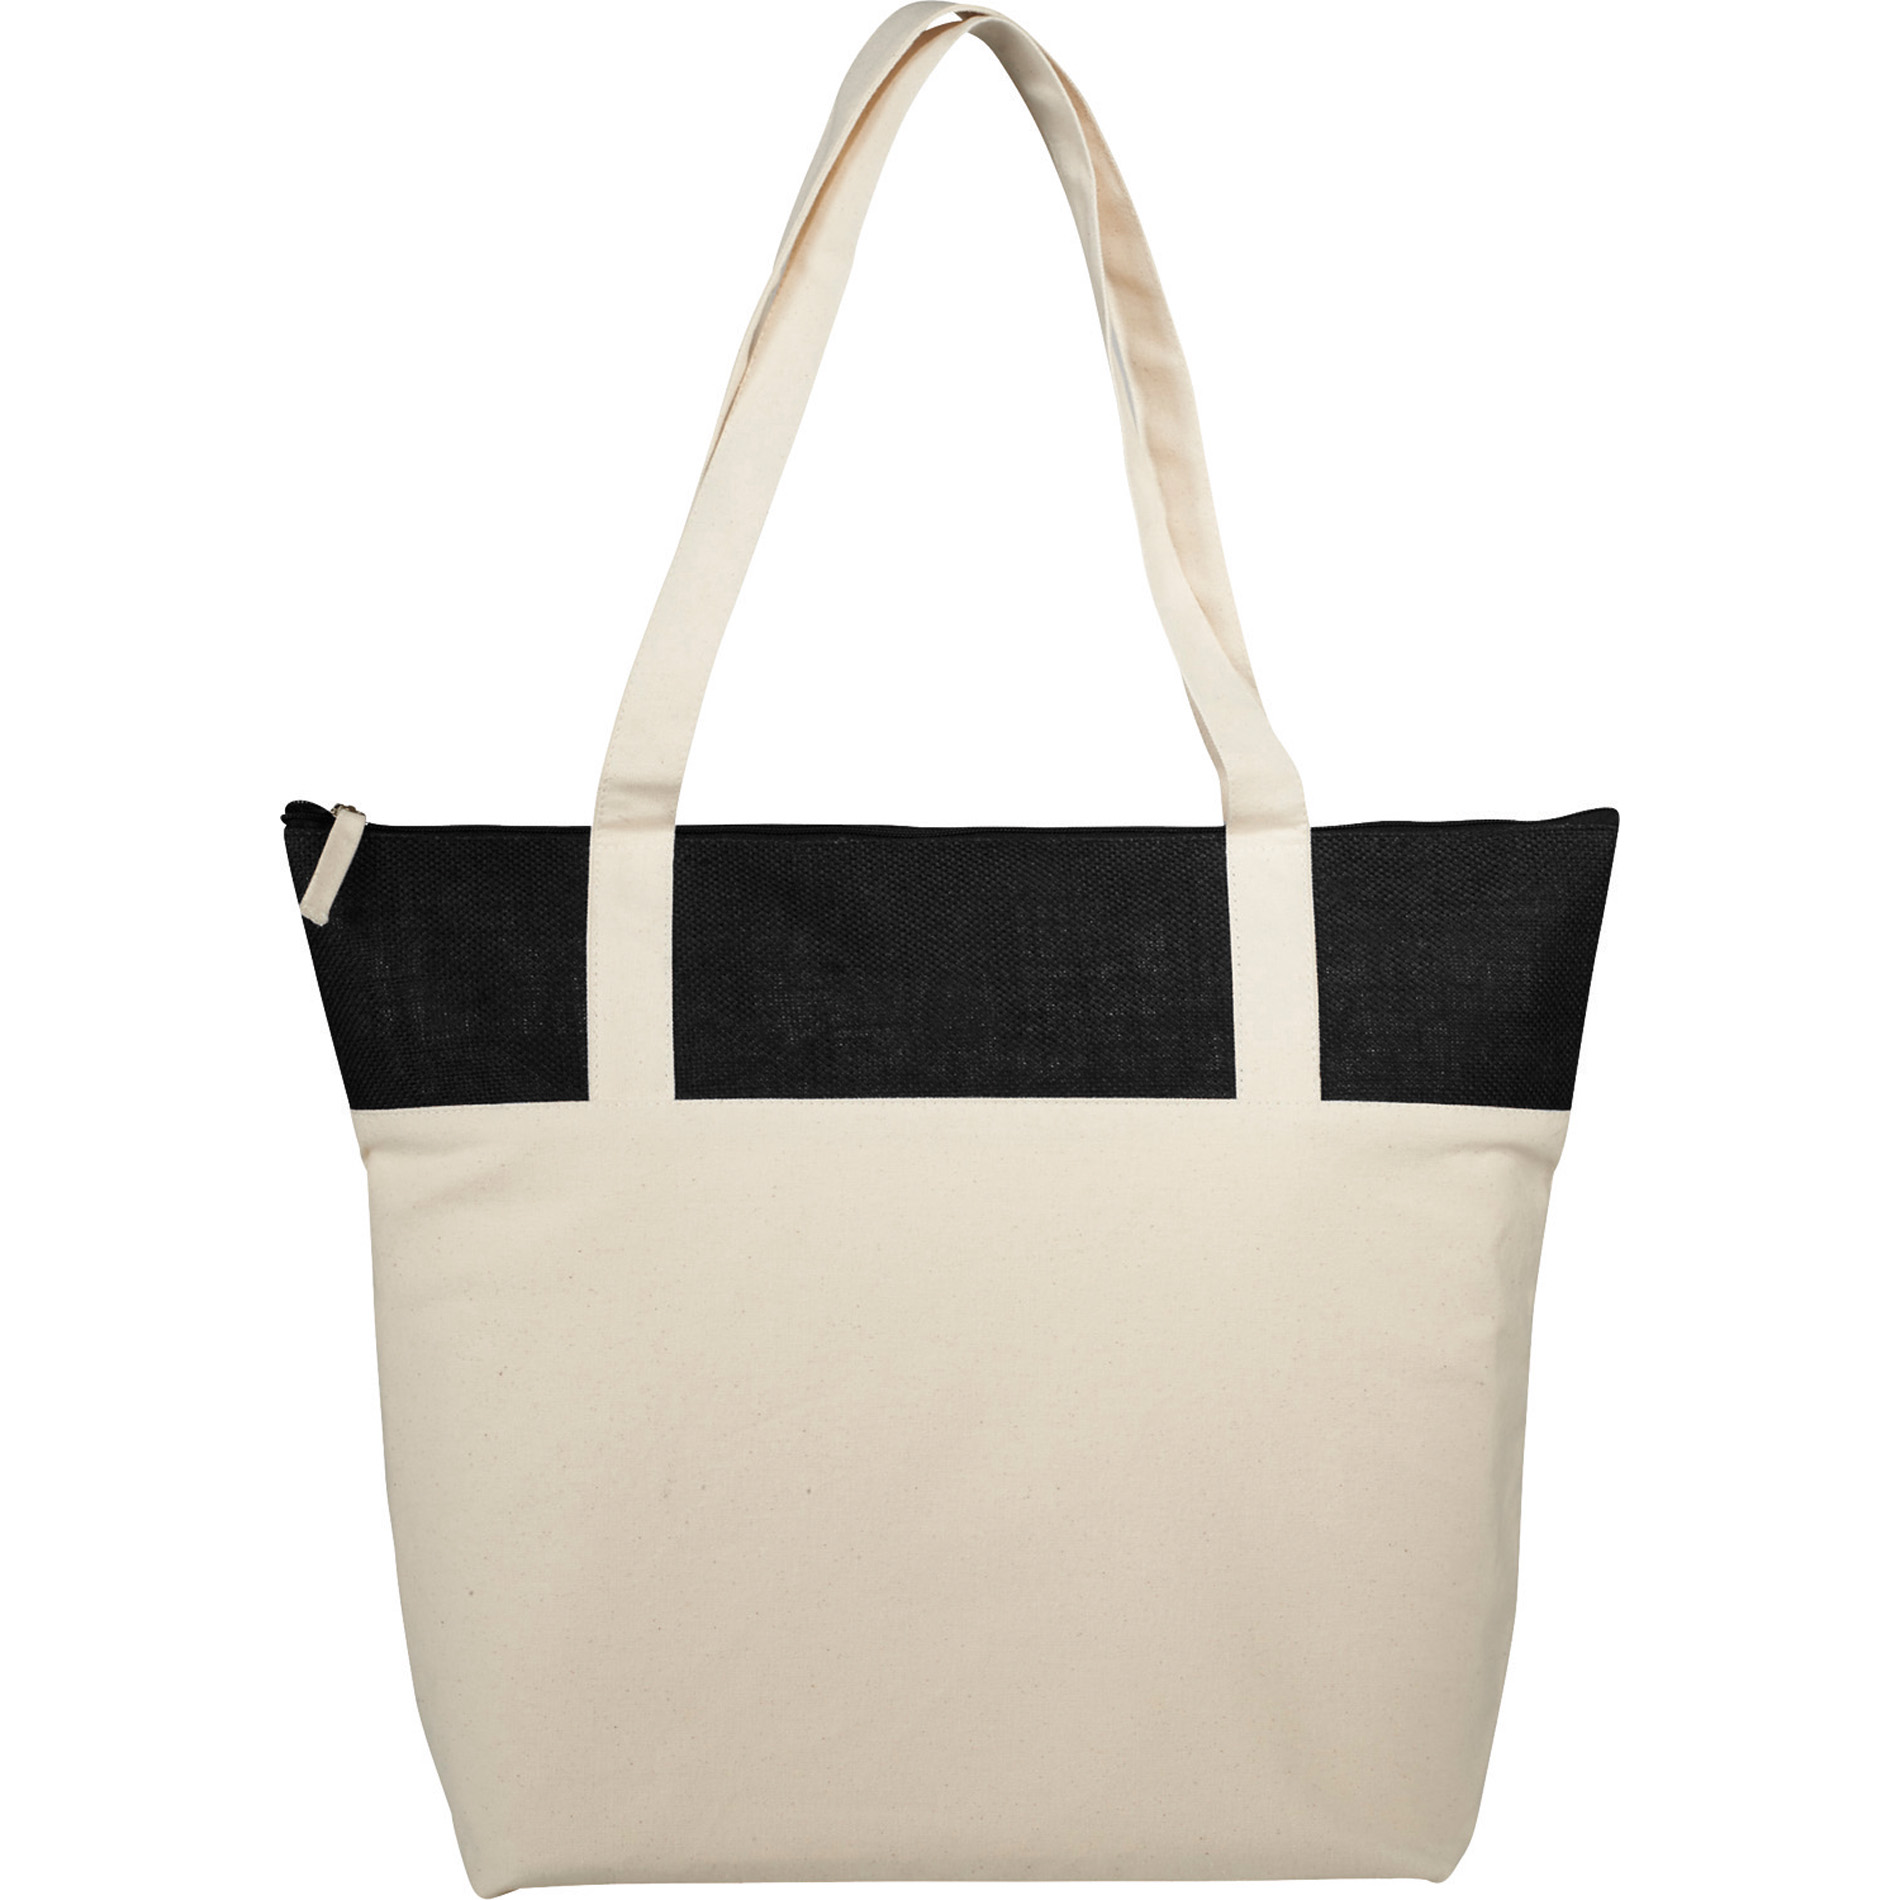 LEEDS 7900-72 - 12 oz. Cotton Canvas and Jute Accent Zippered Tote